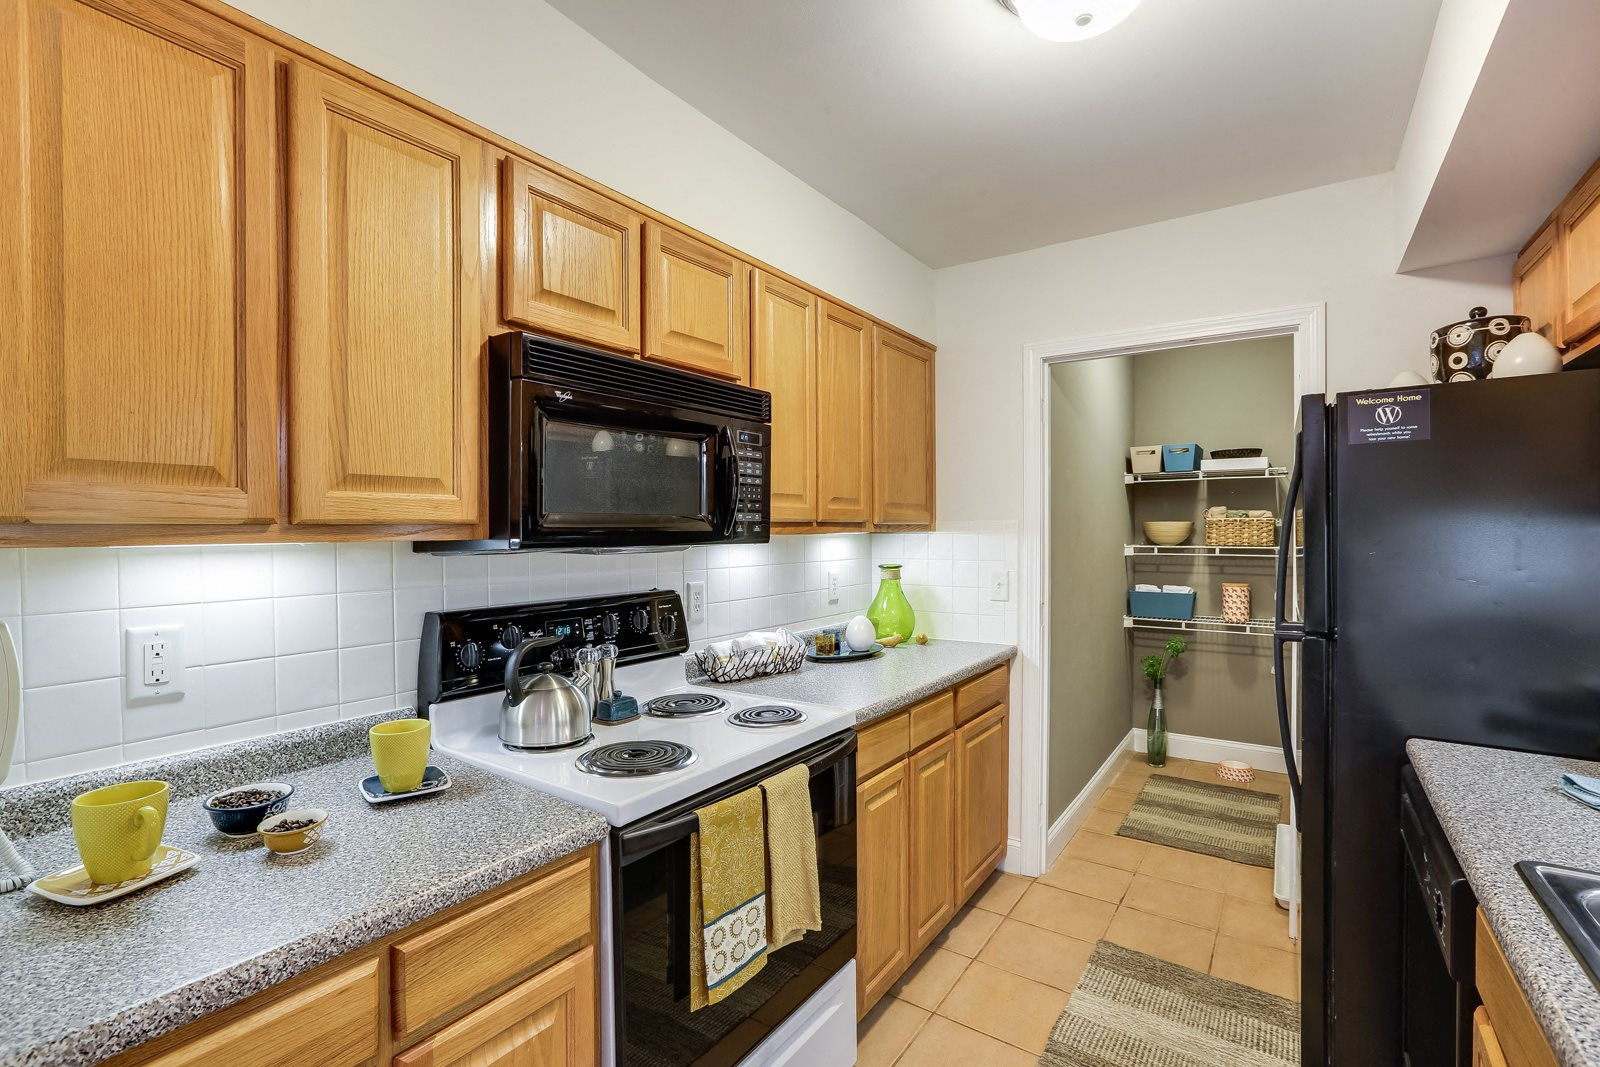 Kitchen with Double Sink and Garbage Disposal at Windsor Village at Waltham, Waltham, MA